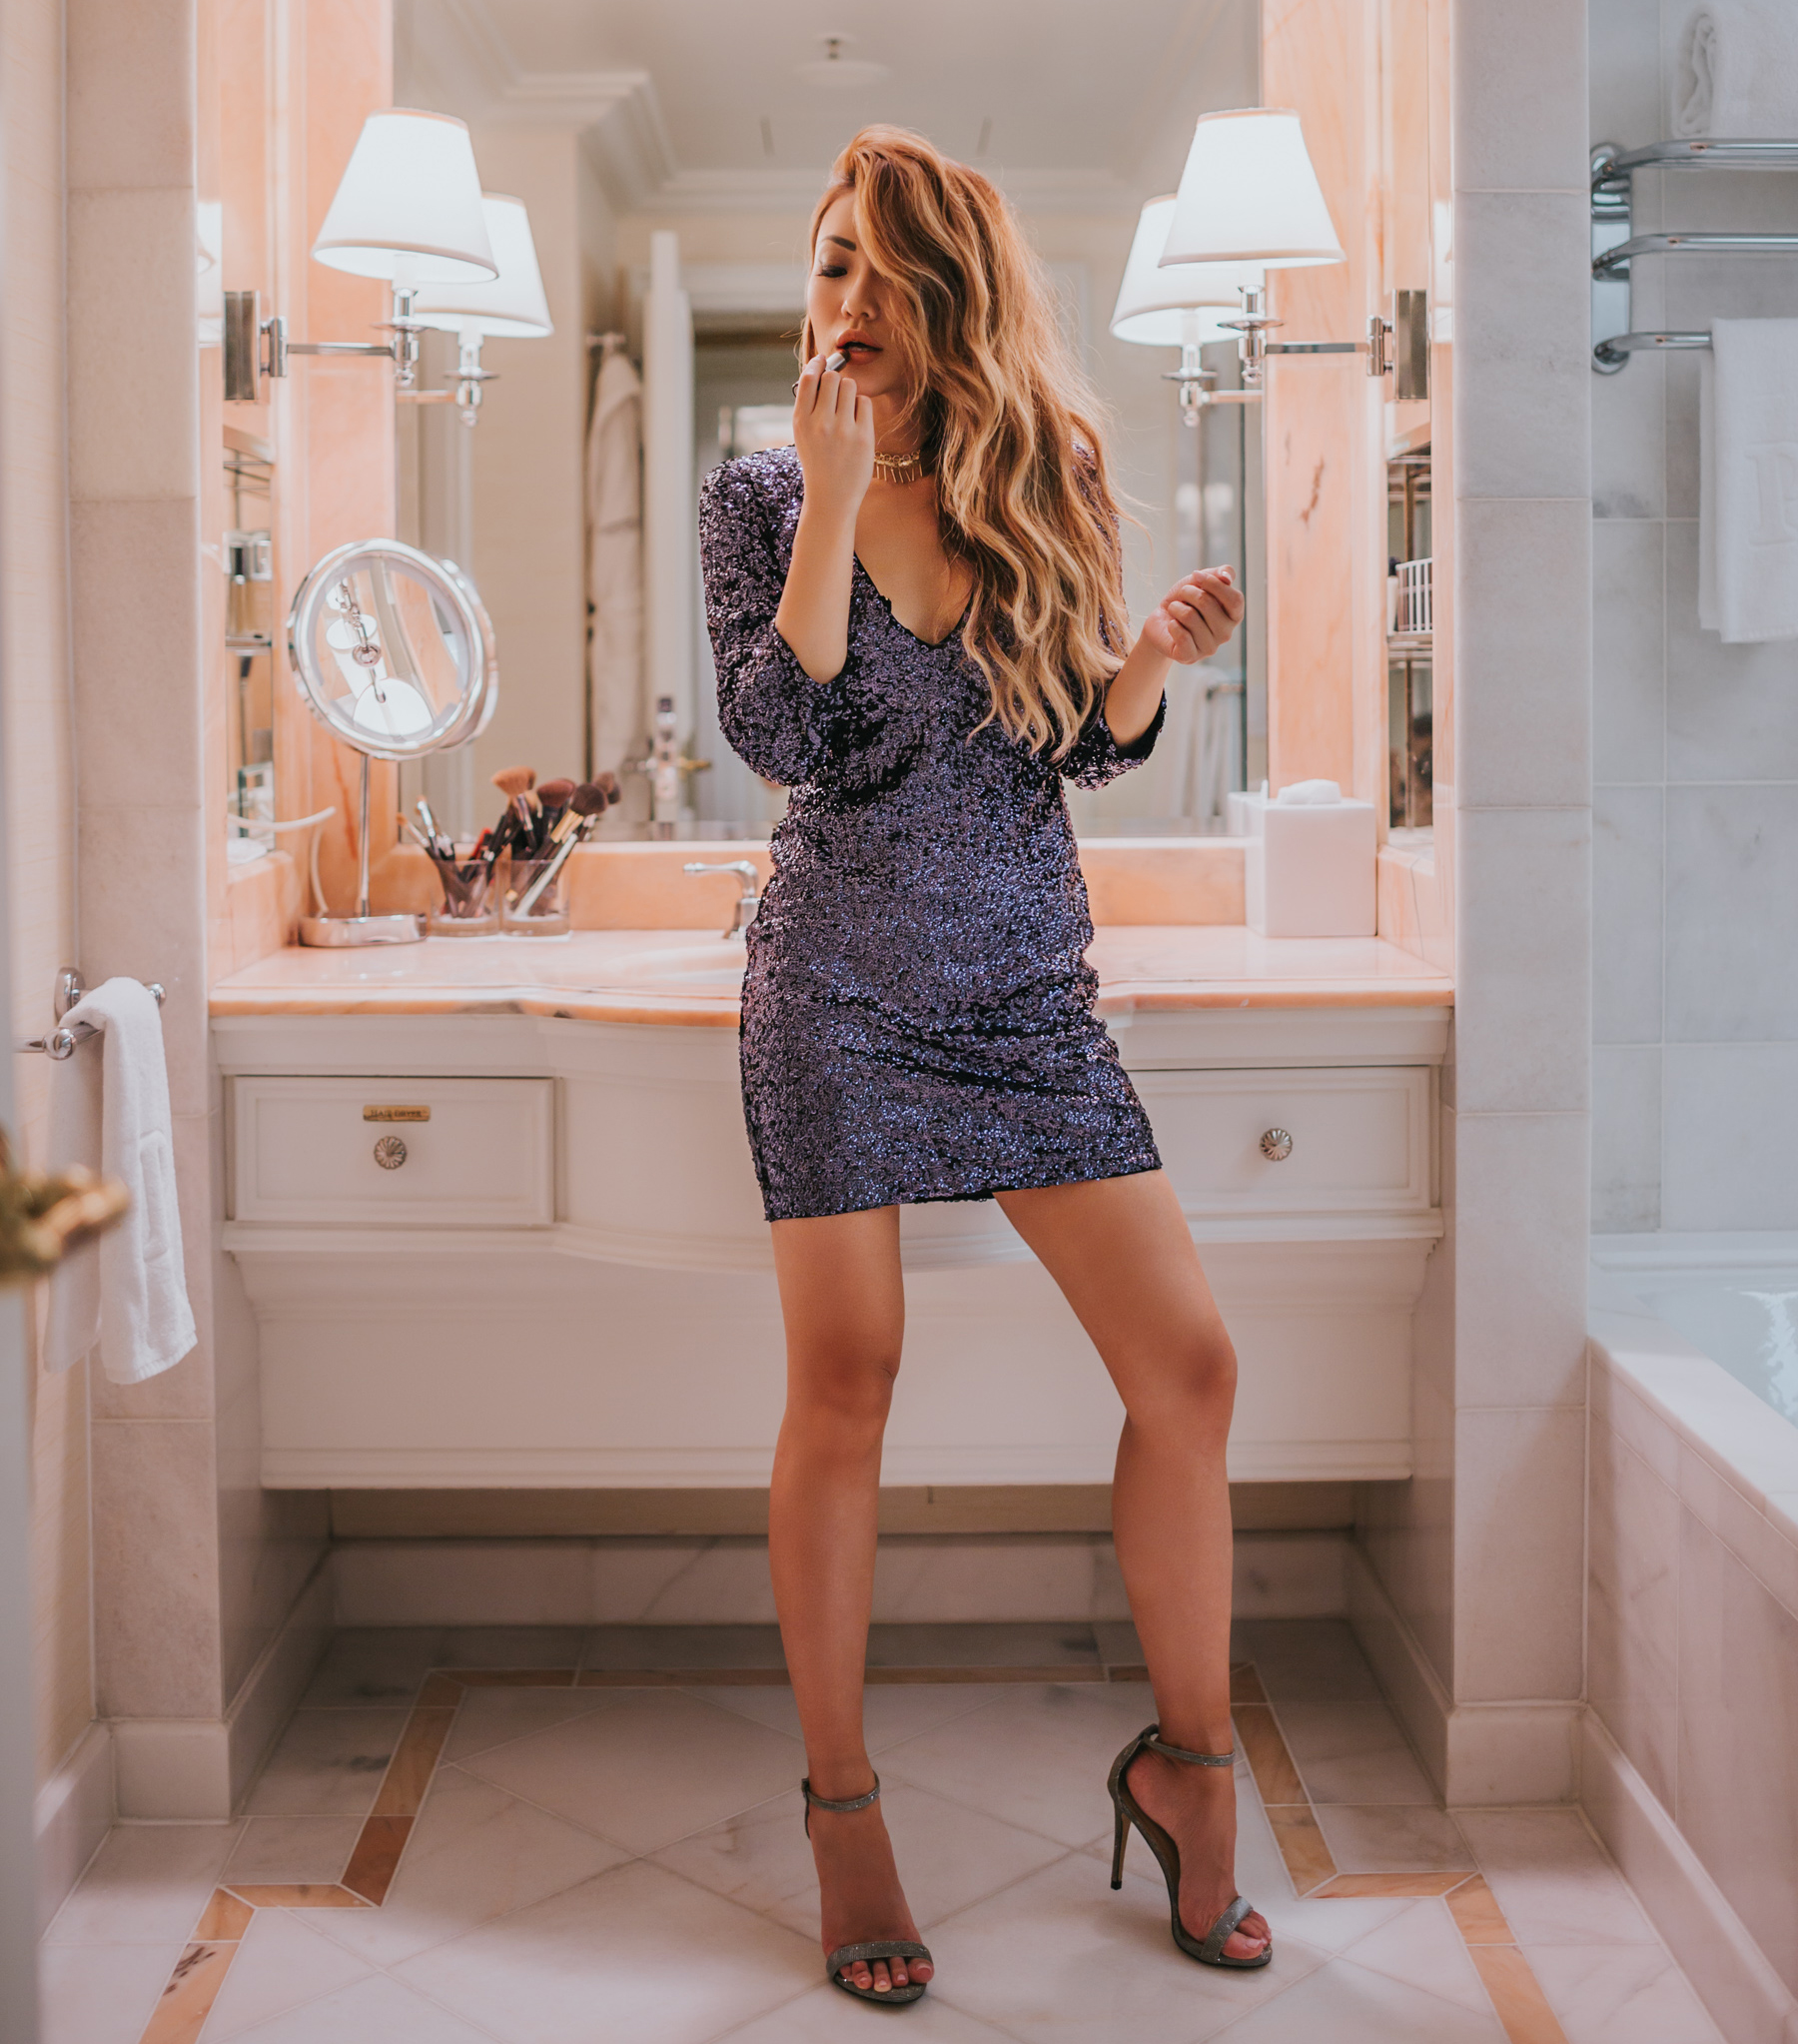 Dresses to Ring in 2018 - New Years Eve NYE Sequin V-neck mini party dress // notjessfashion.com